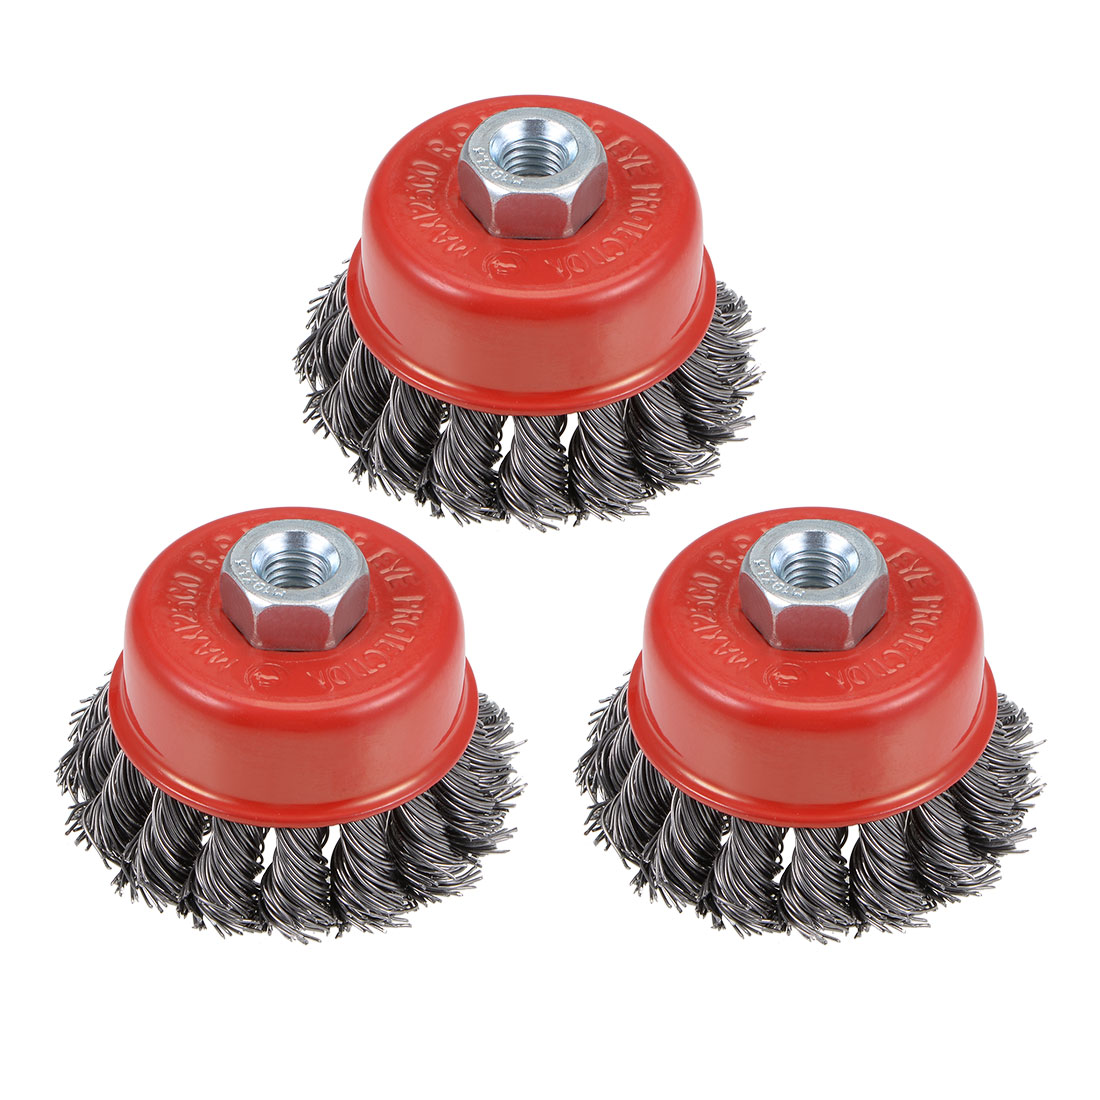 2-1/2-Inch Wire Cup Brush Twist Knotted Crimped Steel w M10 Threaded Hole 3 Pcs